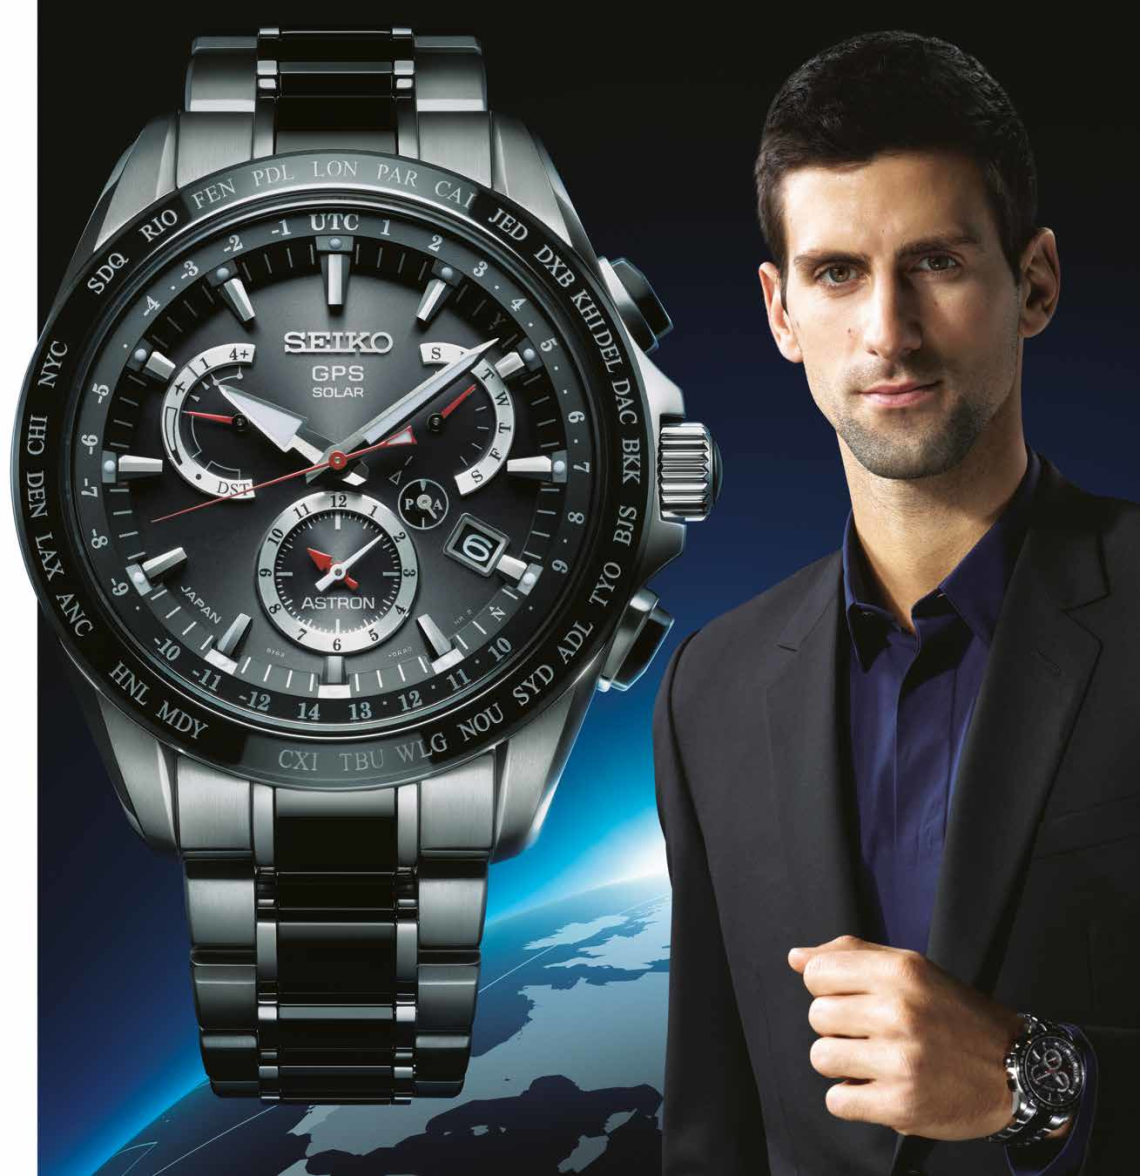 """Seiko is proud to be the watch partner of the world's leading tennis player, Novak Djokovic. Like Seiko, Novak is dedicated to perfection. And like Novak, Seiko is determined to be """"one step ahead of the rest""""."""